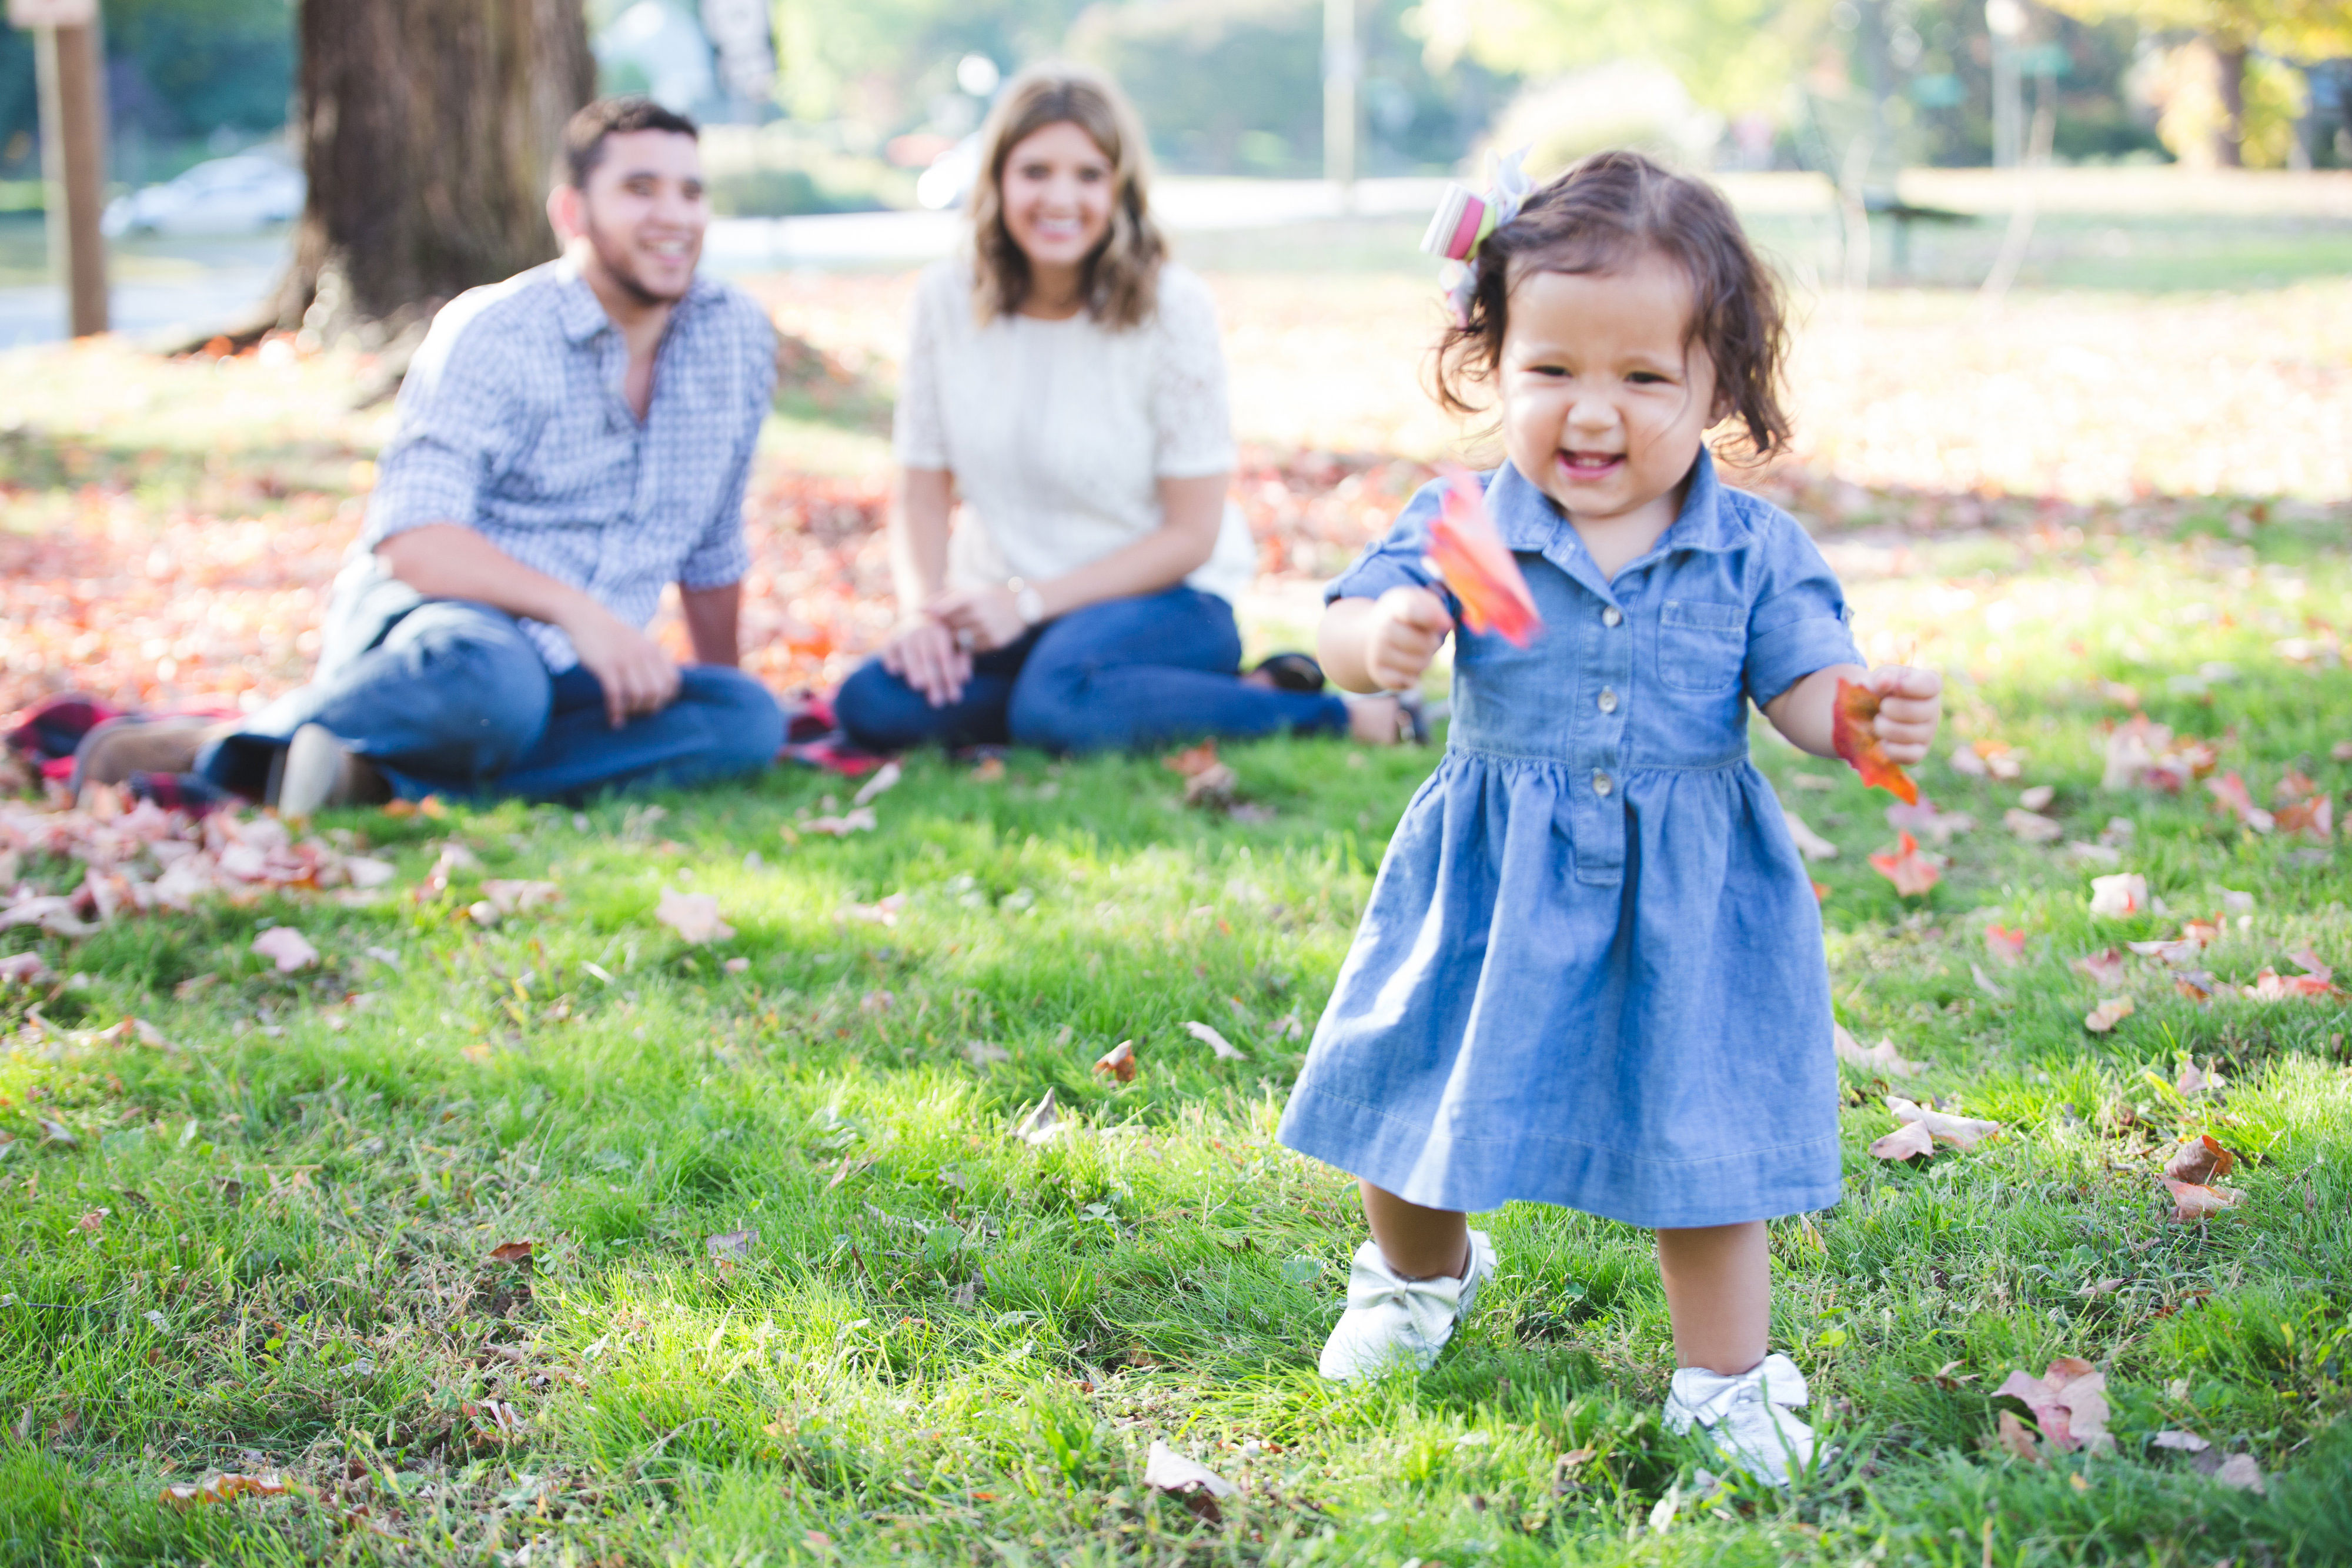 family photos with a toddler - tips for family photo outfits | www.bylaurenm.com